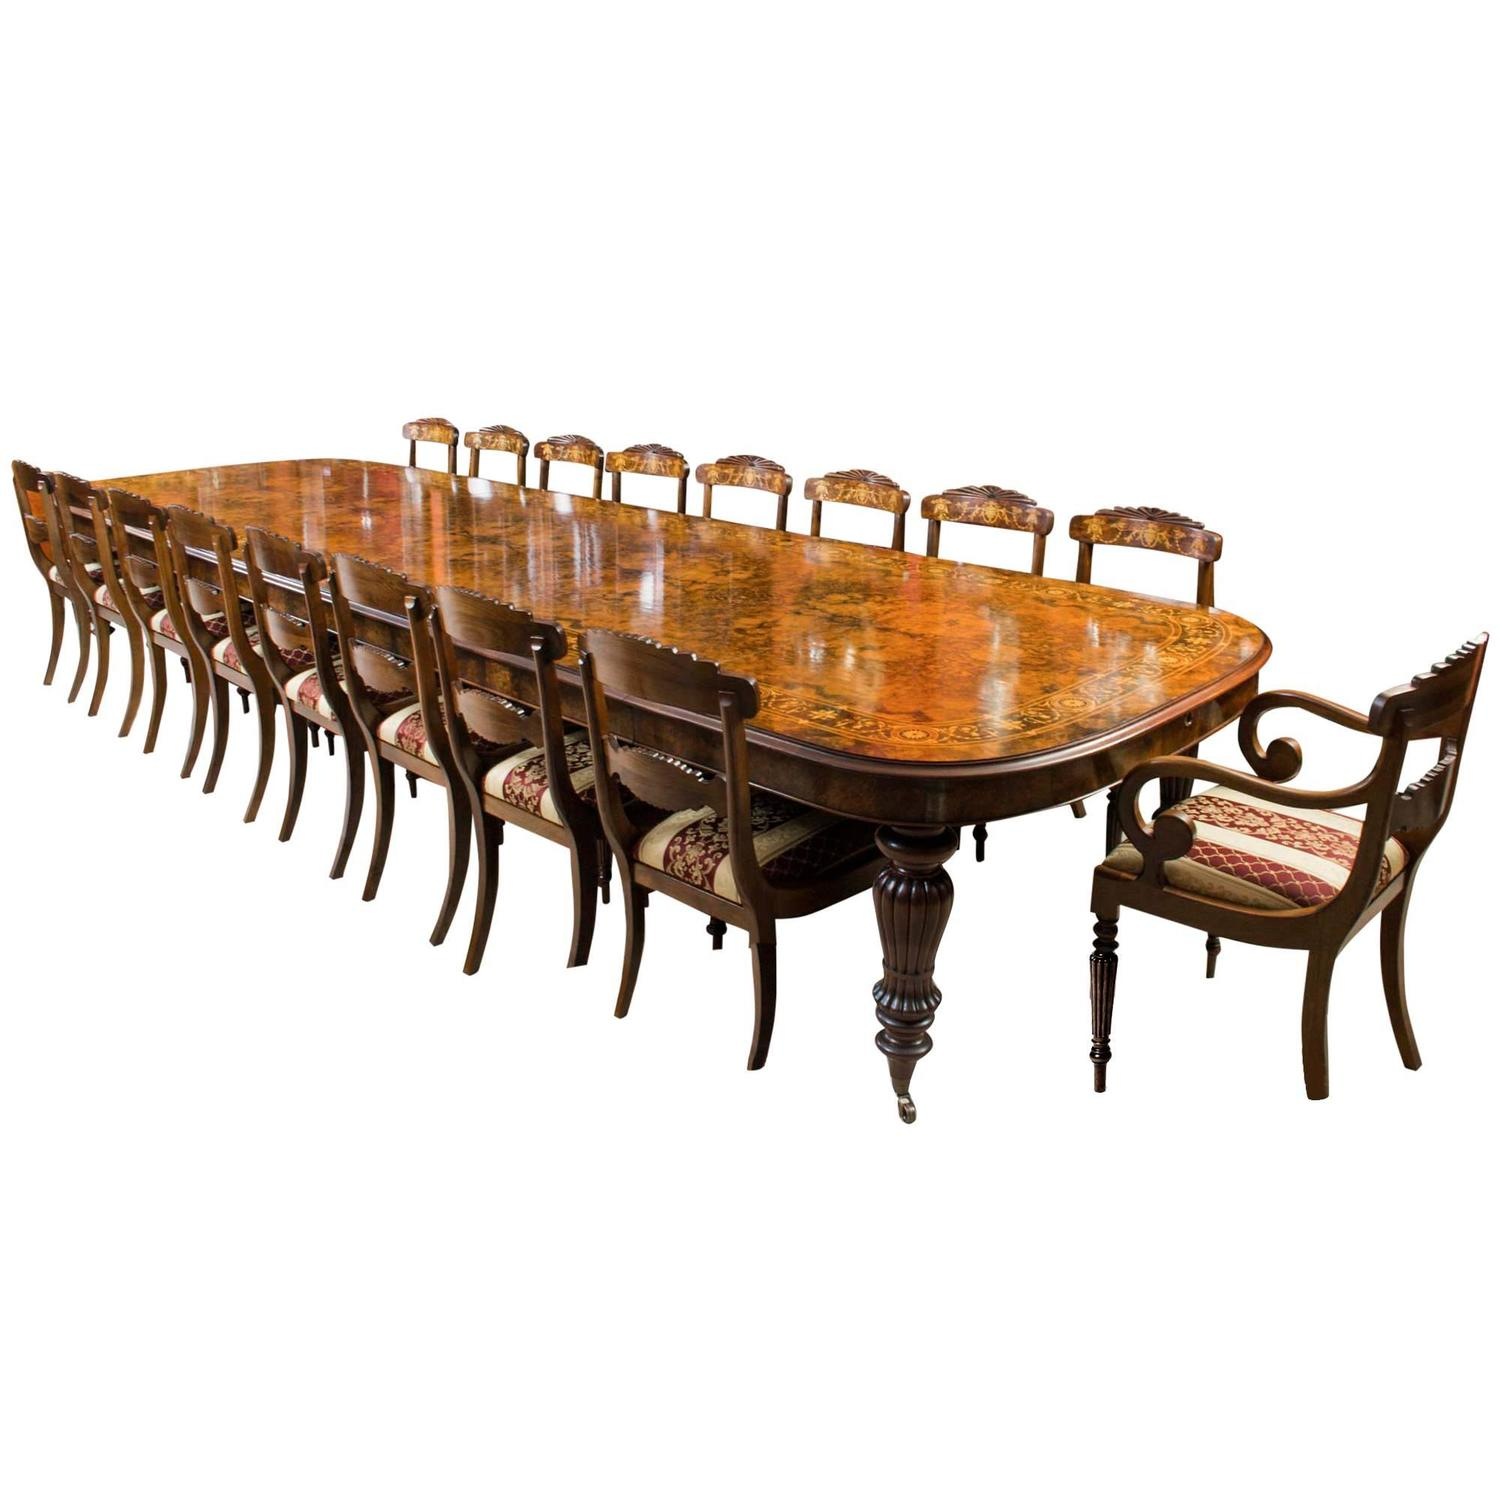 Huge Bespoke Handmade Marquetry Walnut Extending Dining Table 18 Chairs For  Sale at 1stdibs. Huge Bespoke Handmade Marquetry Walnut Extending Dining Table 18